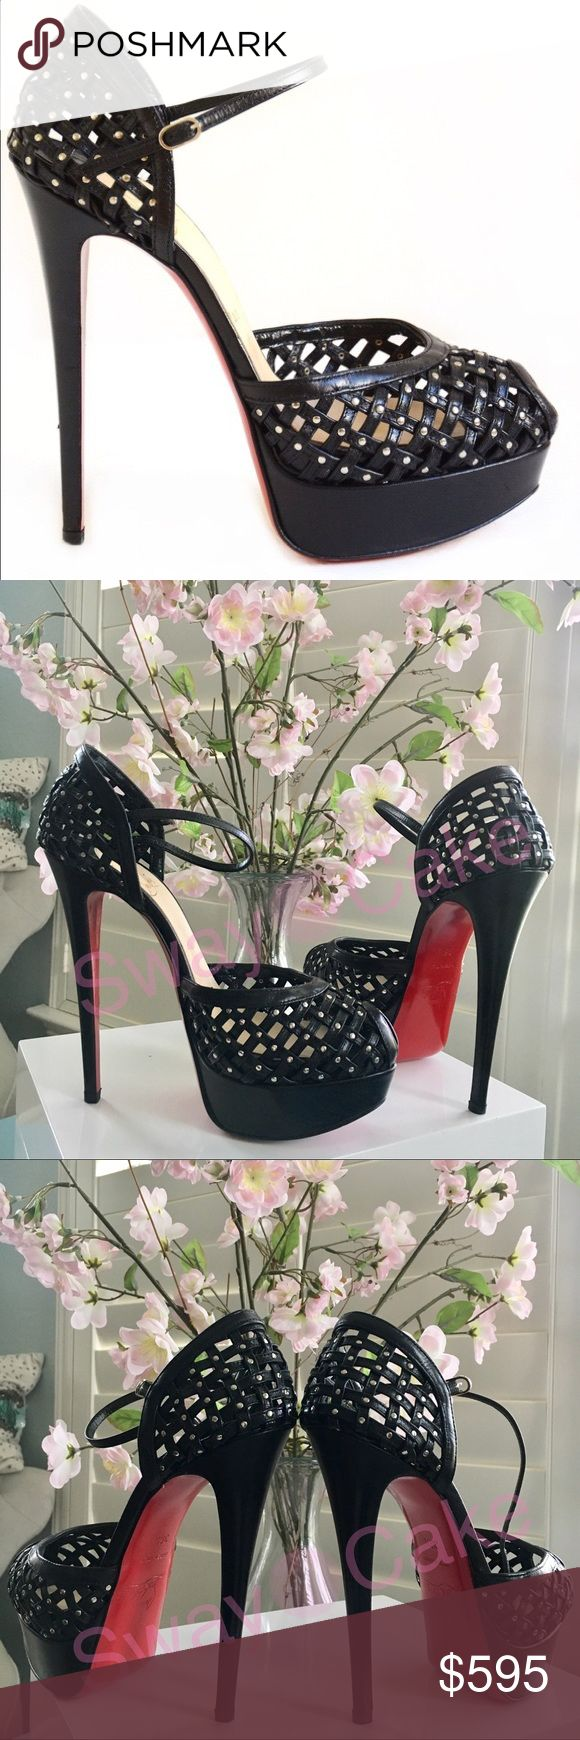 Christian Louboutin Mrs Kid 150 Follow the cage trend with these sultry leather platform sandals. Woven lattice with flat silver-tone stud accents.  * Christian Louboutin * caged leather / studded upper * peep toe * ankle strap with buckle closure  * Iconic Red Leather Sole * 150mm covered stiletto heel * included: box and dustbag  * leather lining * Retailed for 1395 * EUC - worn twice only - fit true to size, in my opinion      Price firm on here. Christian Louboutin Shoes